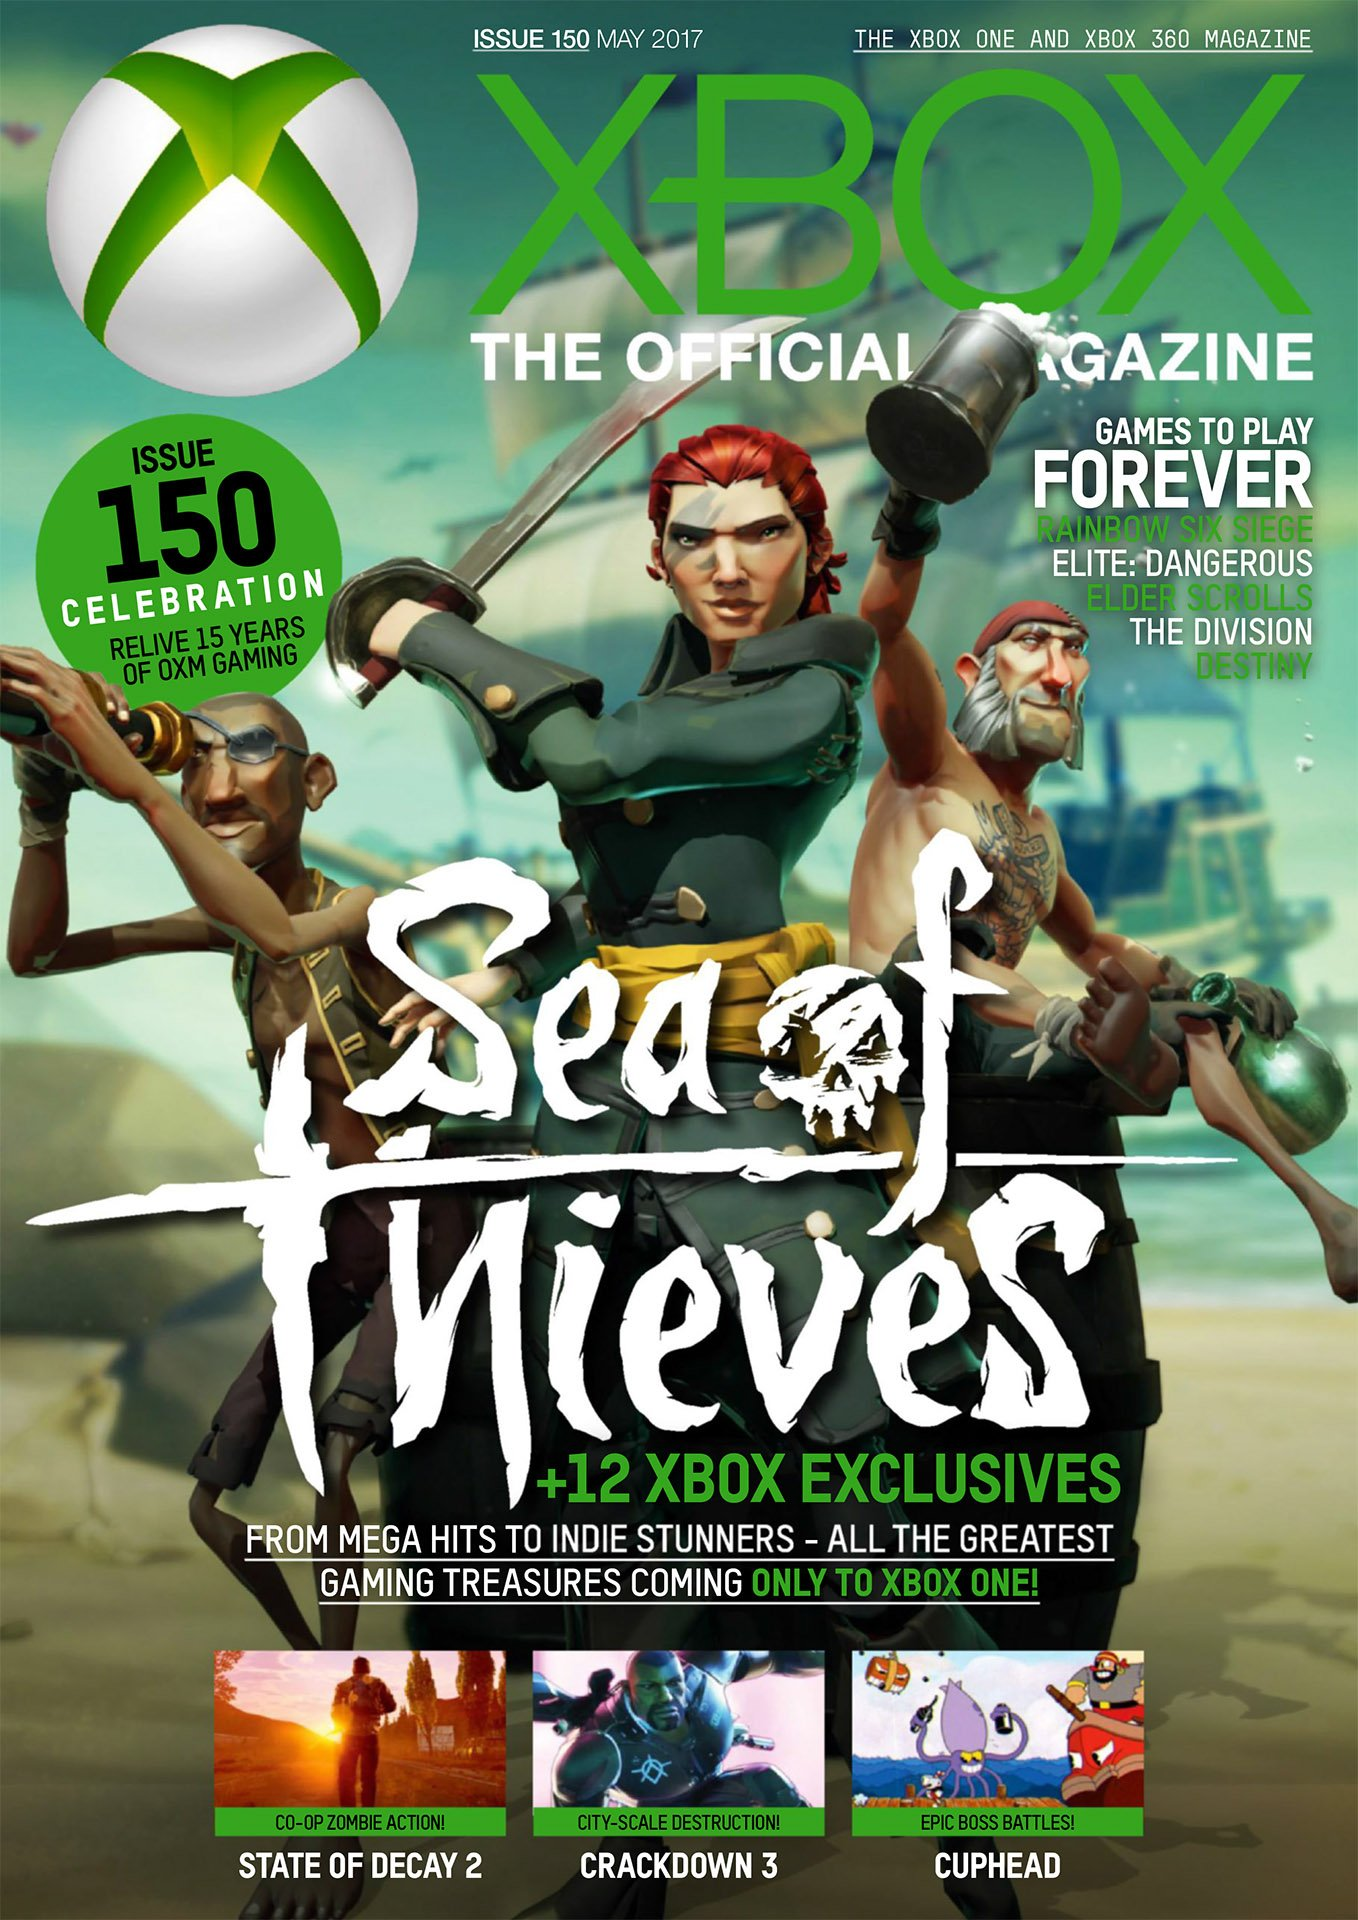 XBOX The Official Magazine Issue 150 May 2017